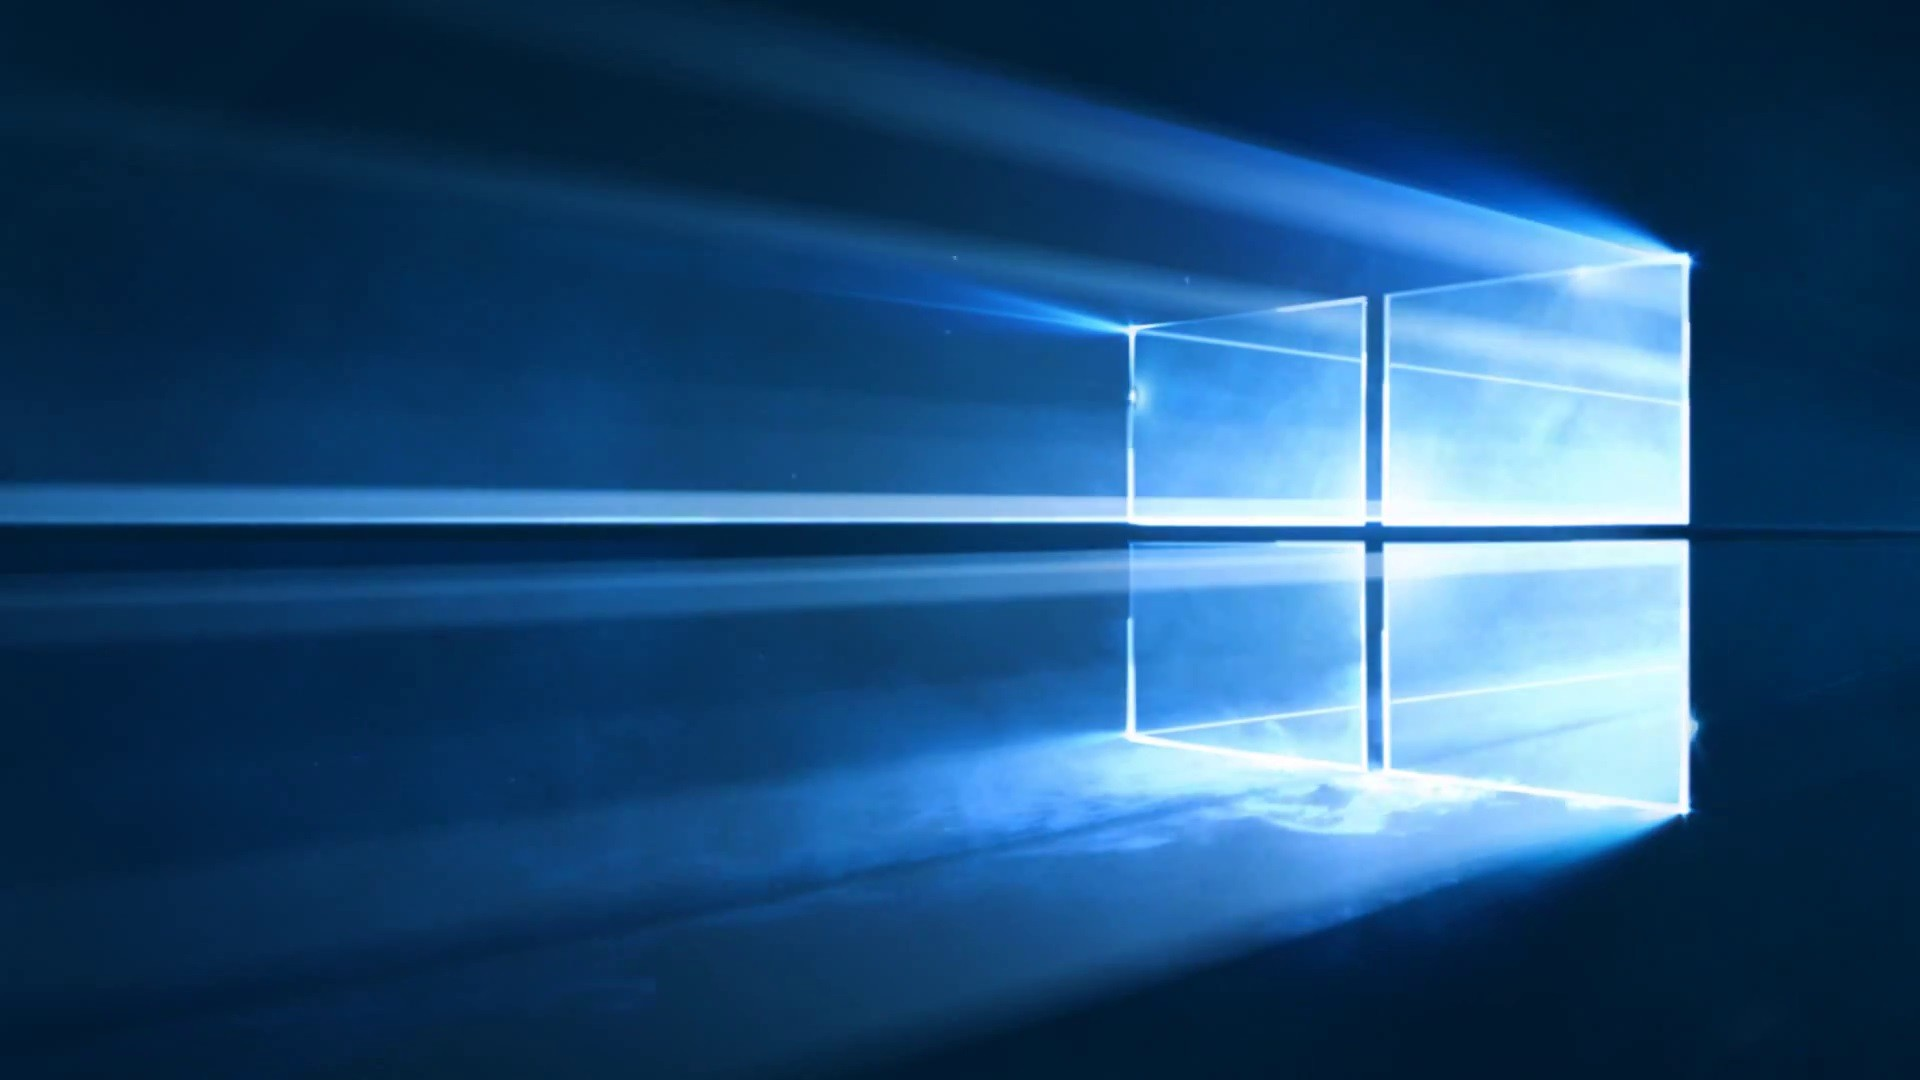 Microsoft Reveals the Official Windows 10 Wallpaper 1920x1080